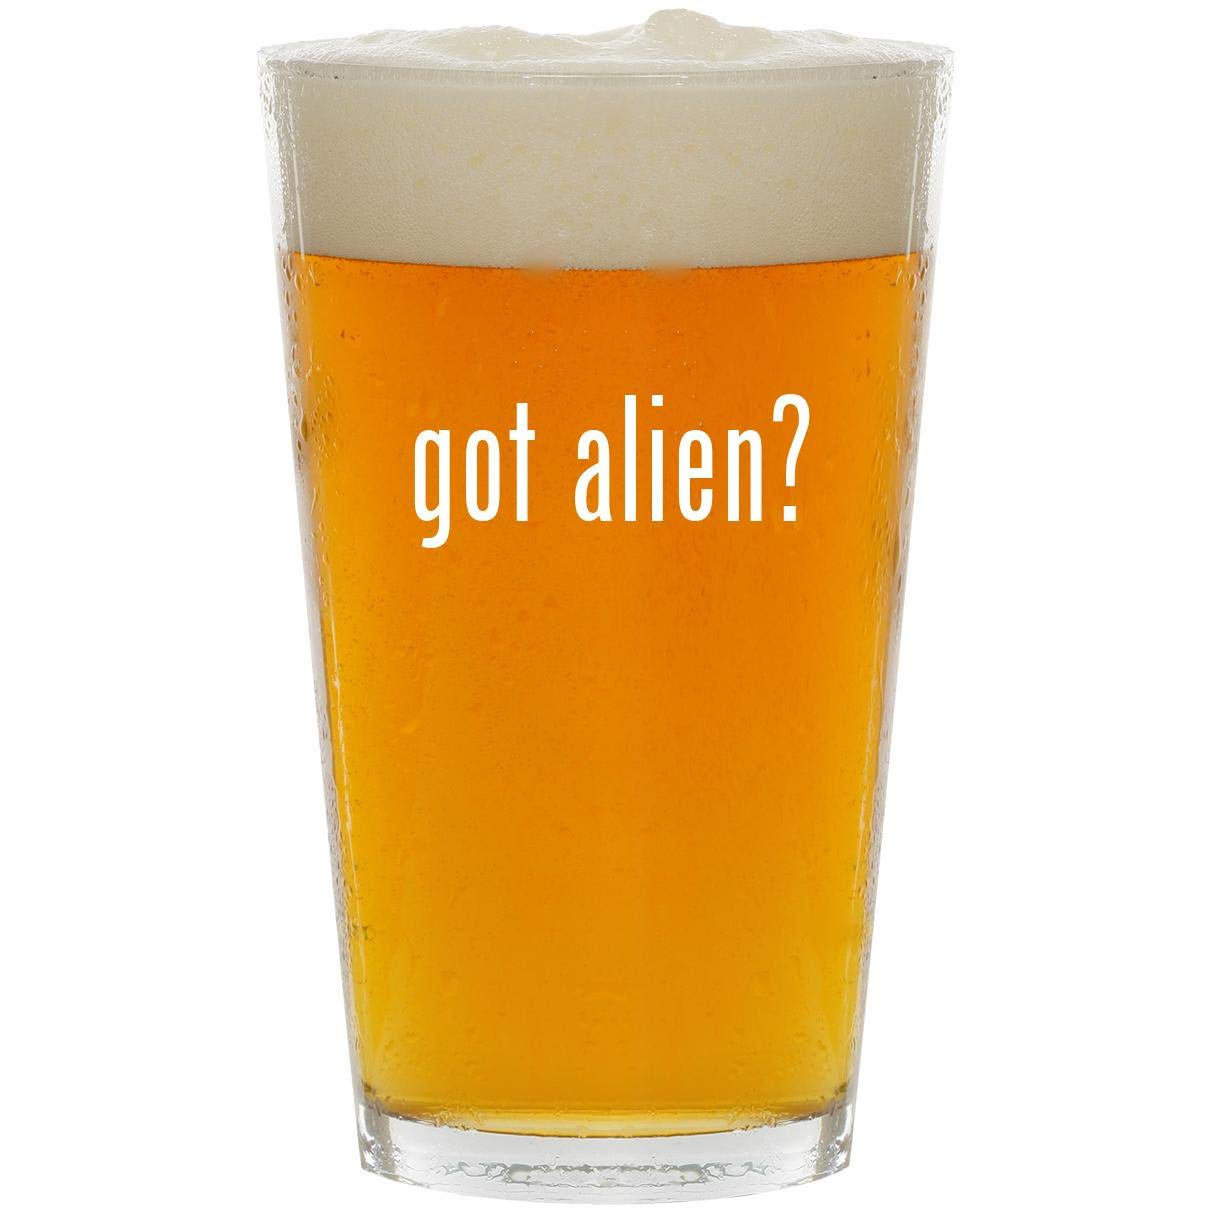 got alien? - Glass 16oz Beer Pint